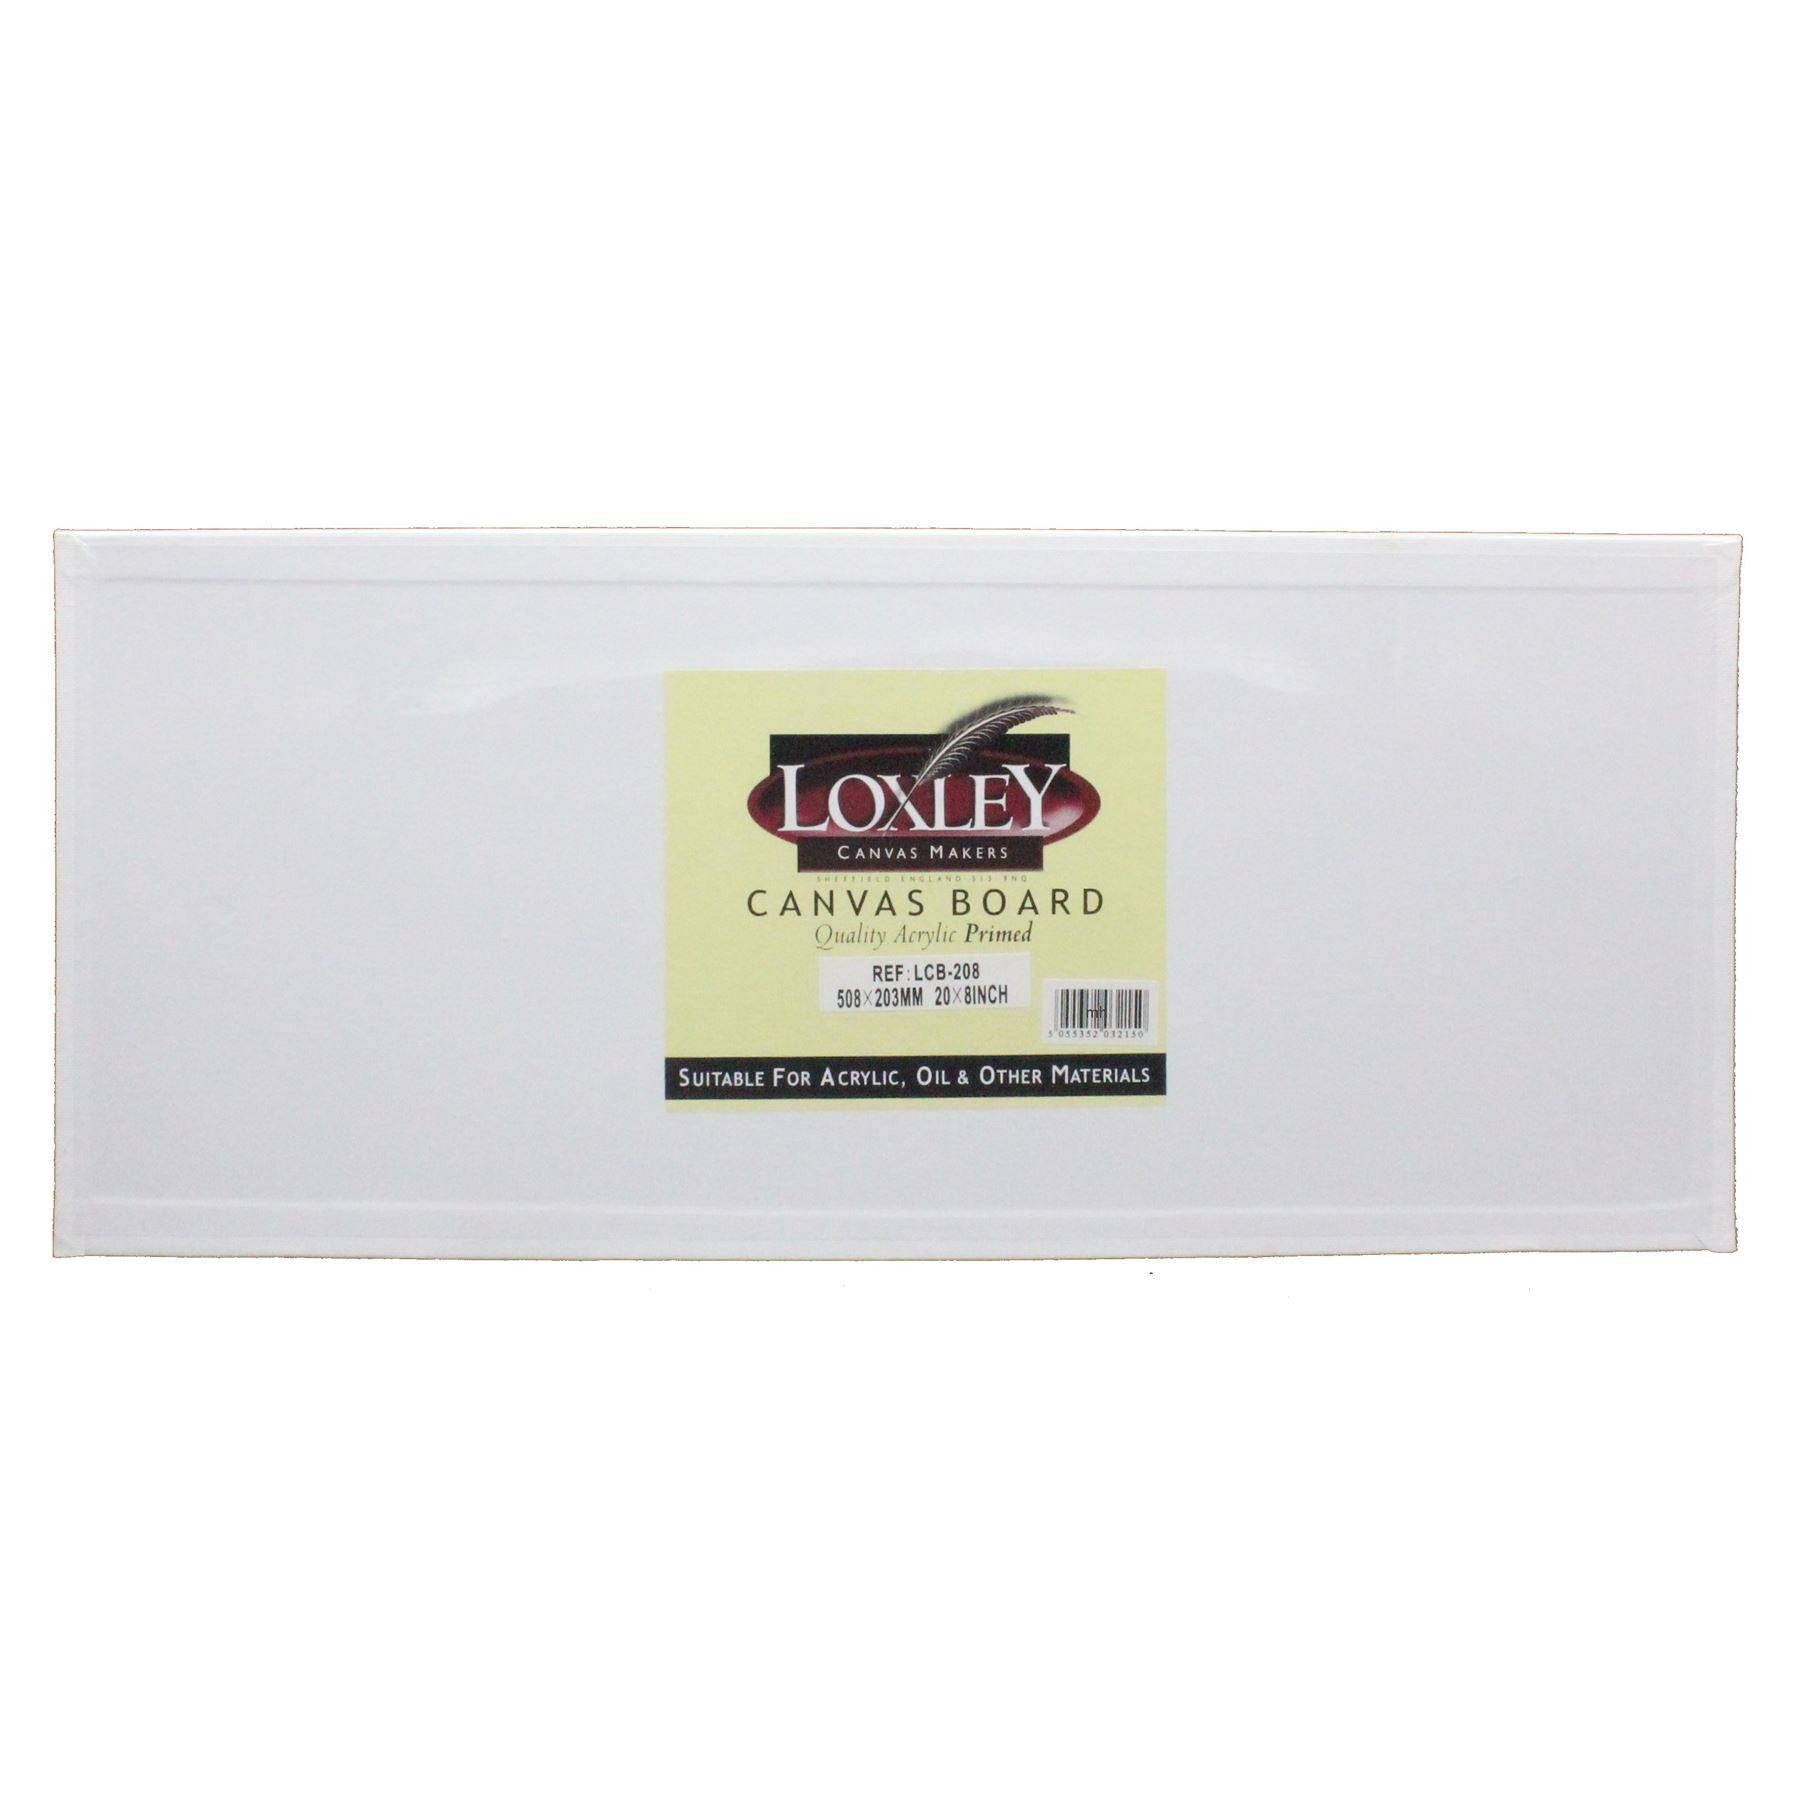 Double Primed Acrylic Canvas Board from Loxley 20 x 8""